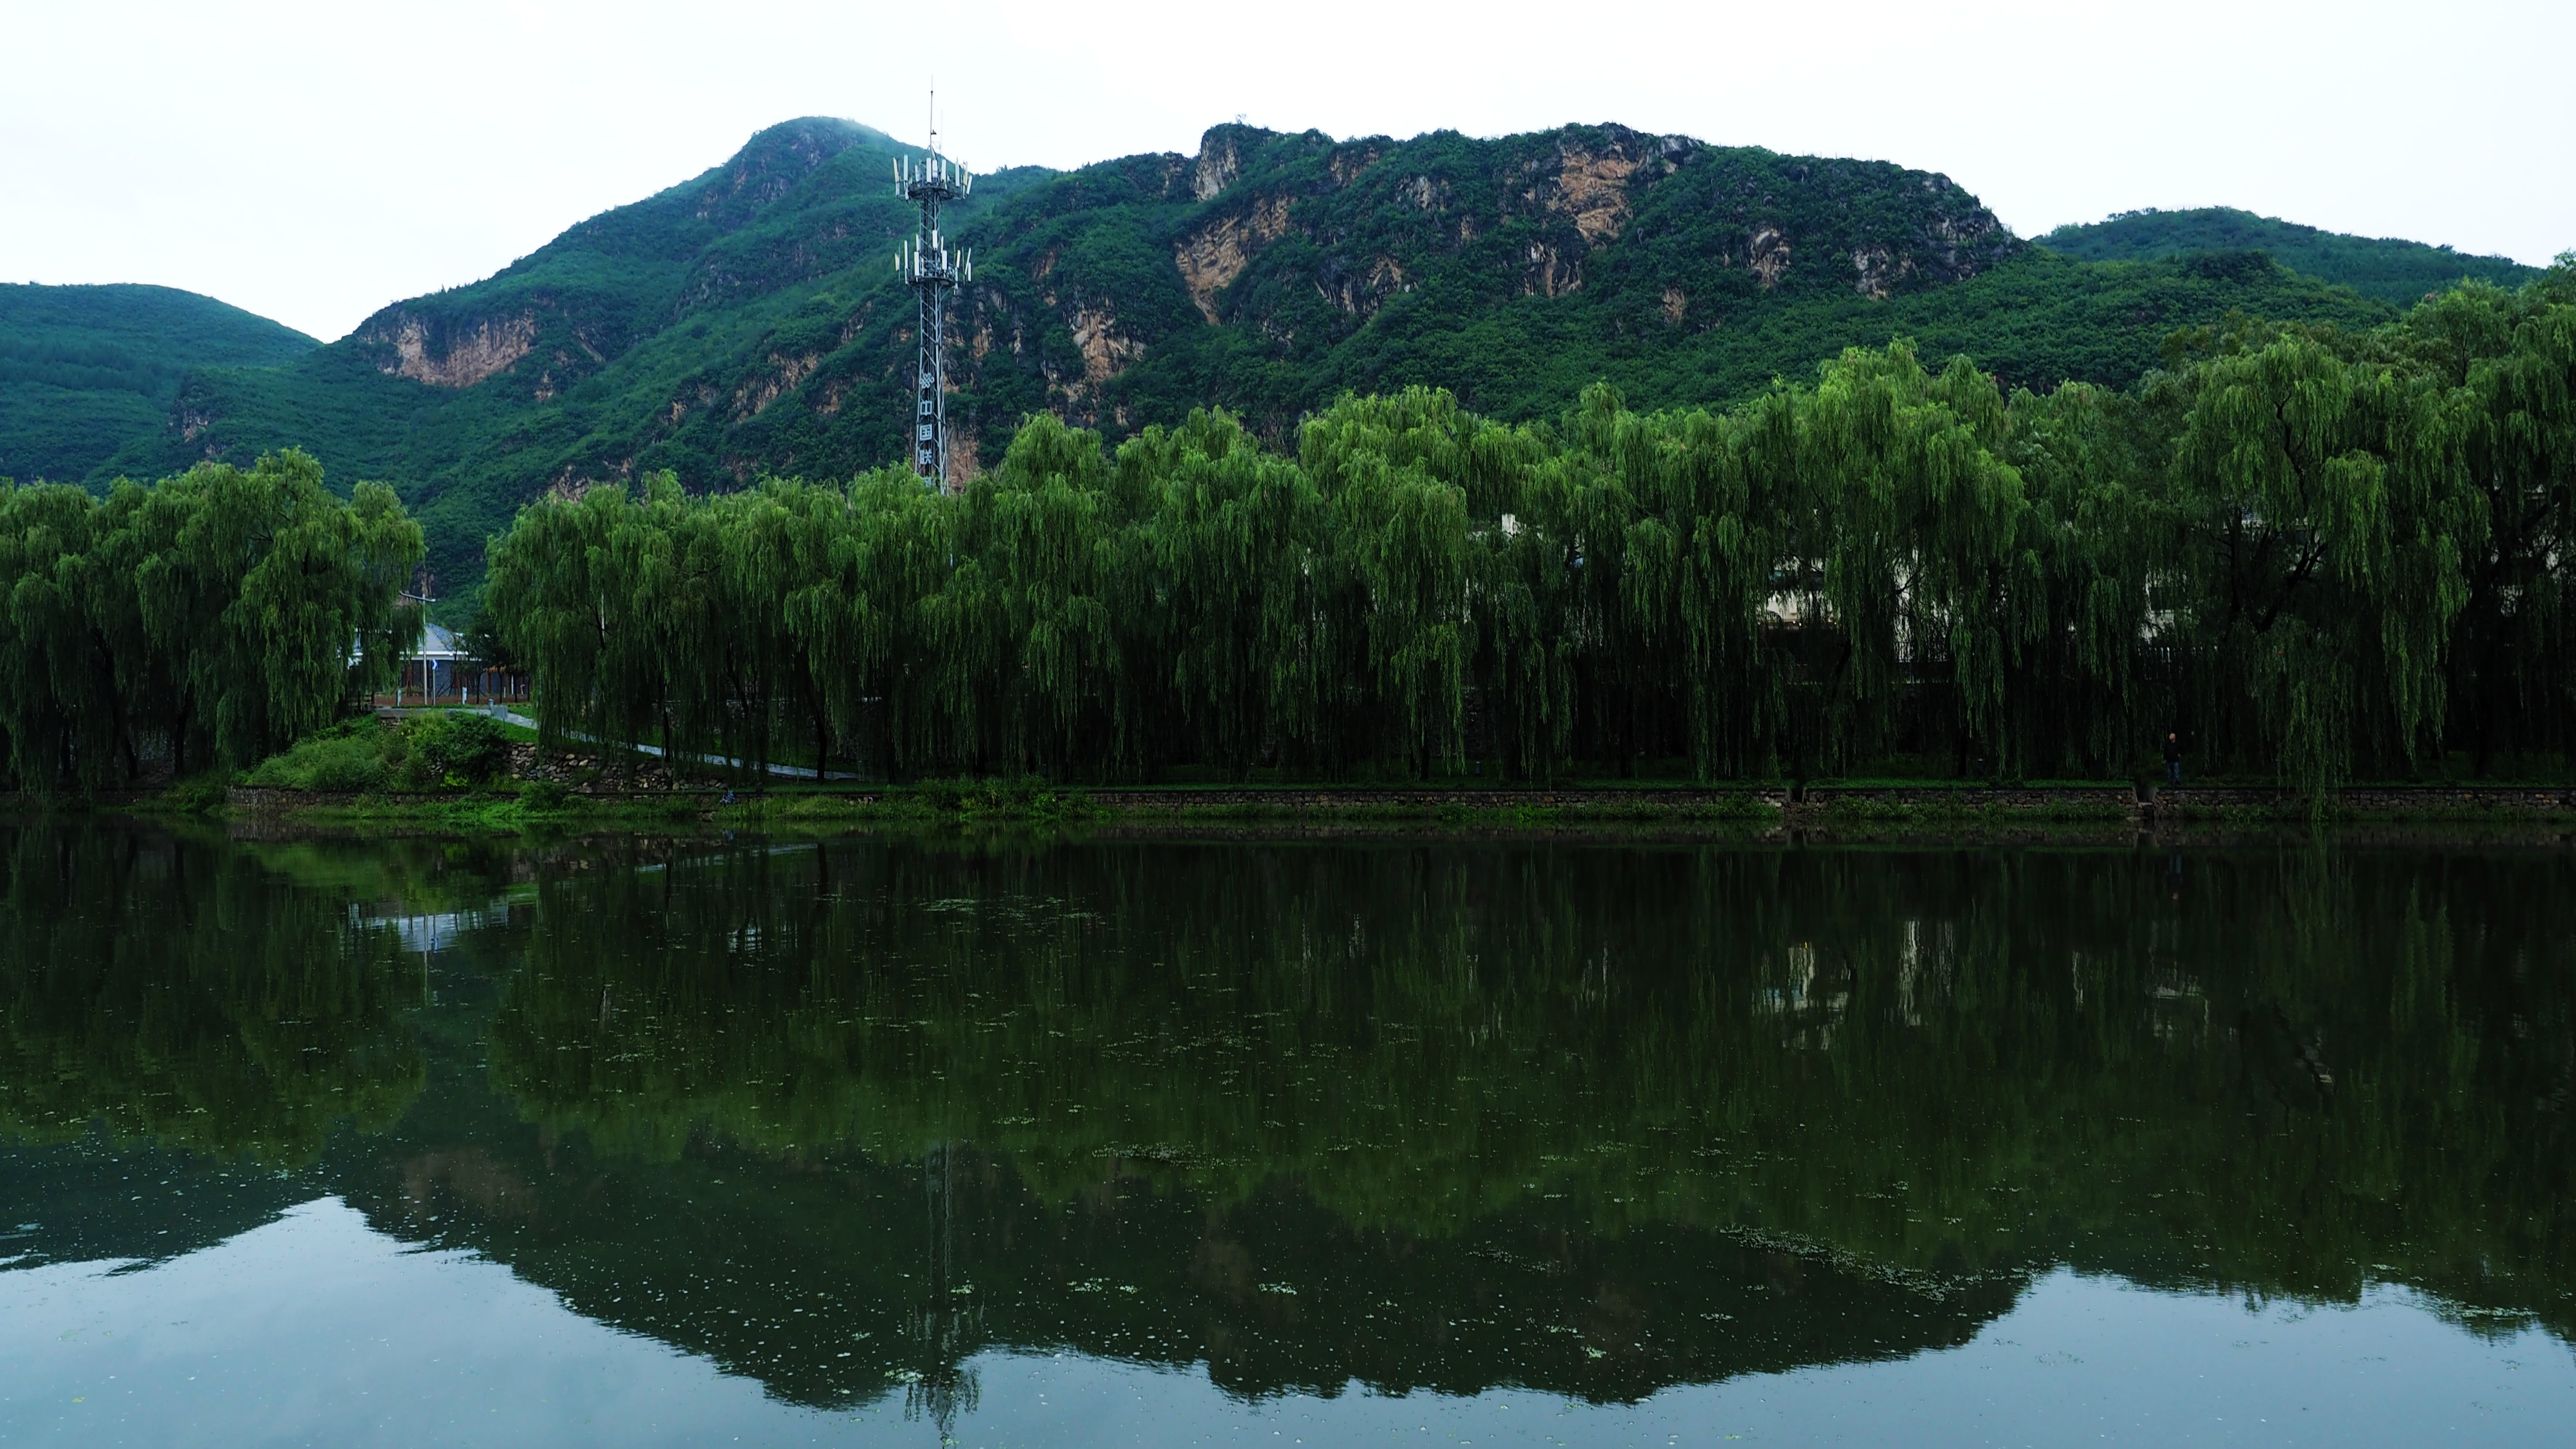 landscape photography of lake surrounded with trees